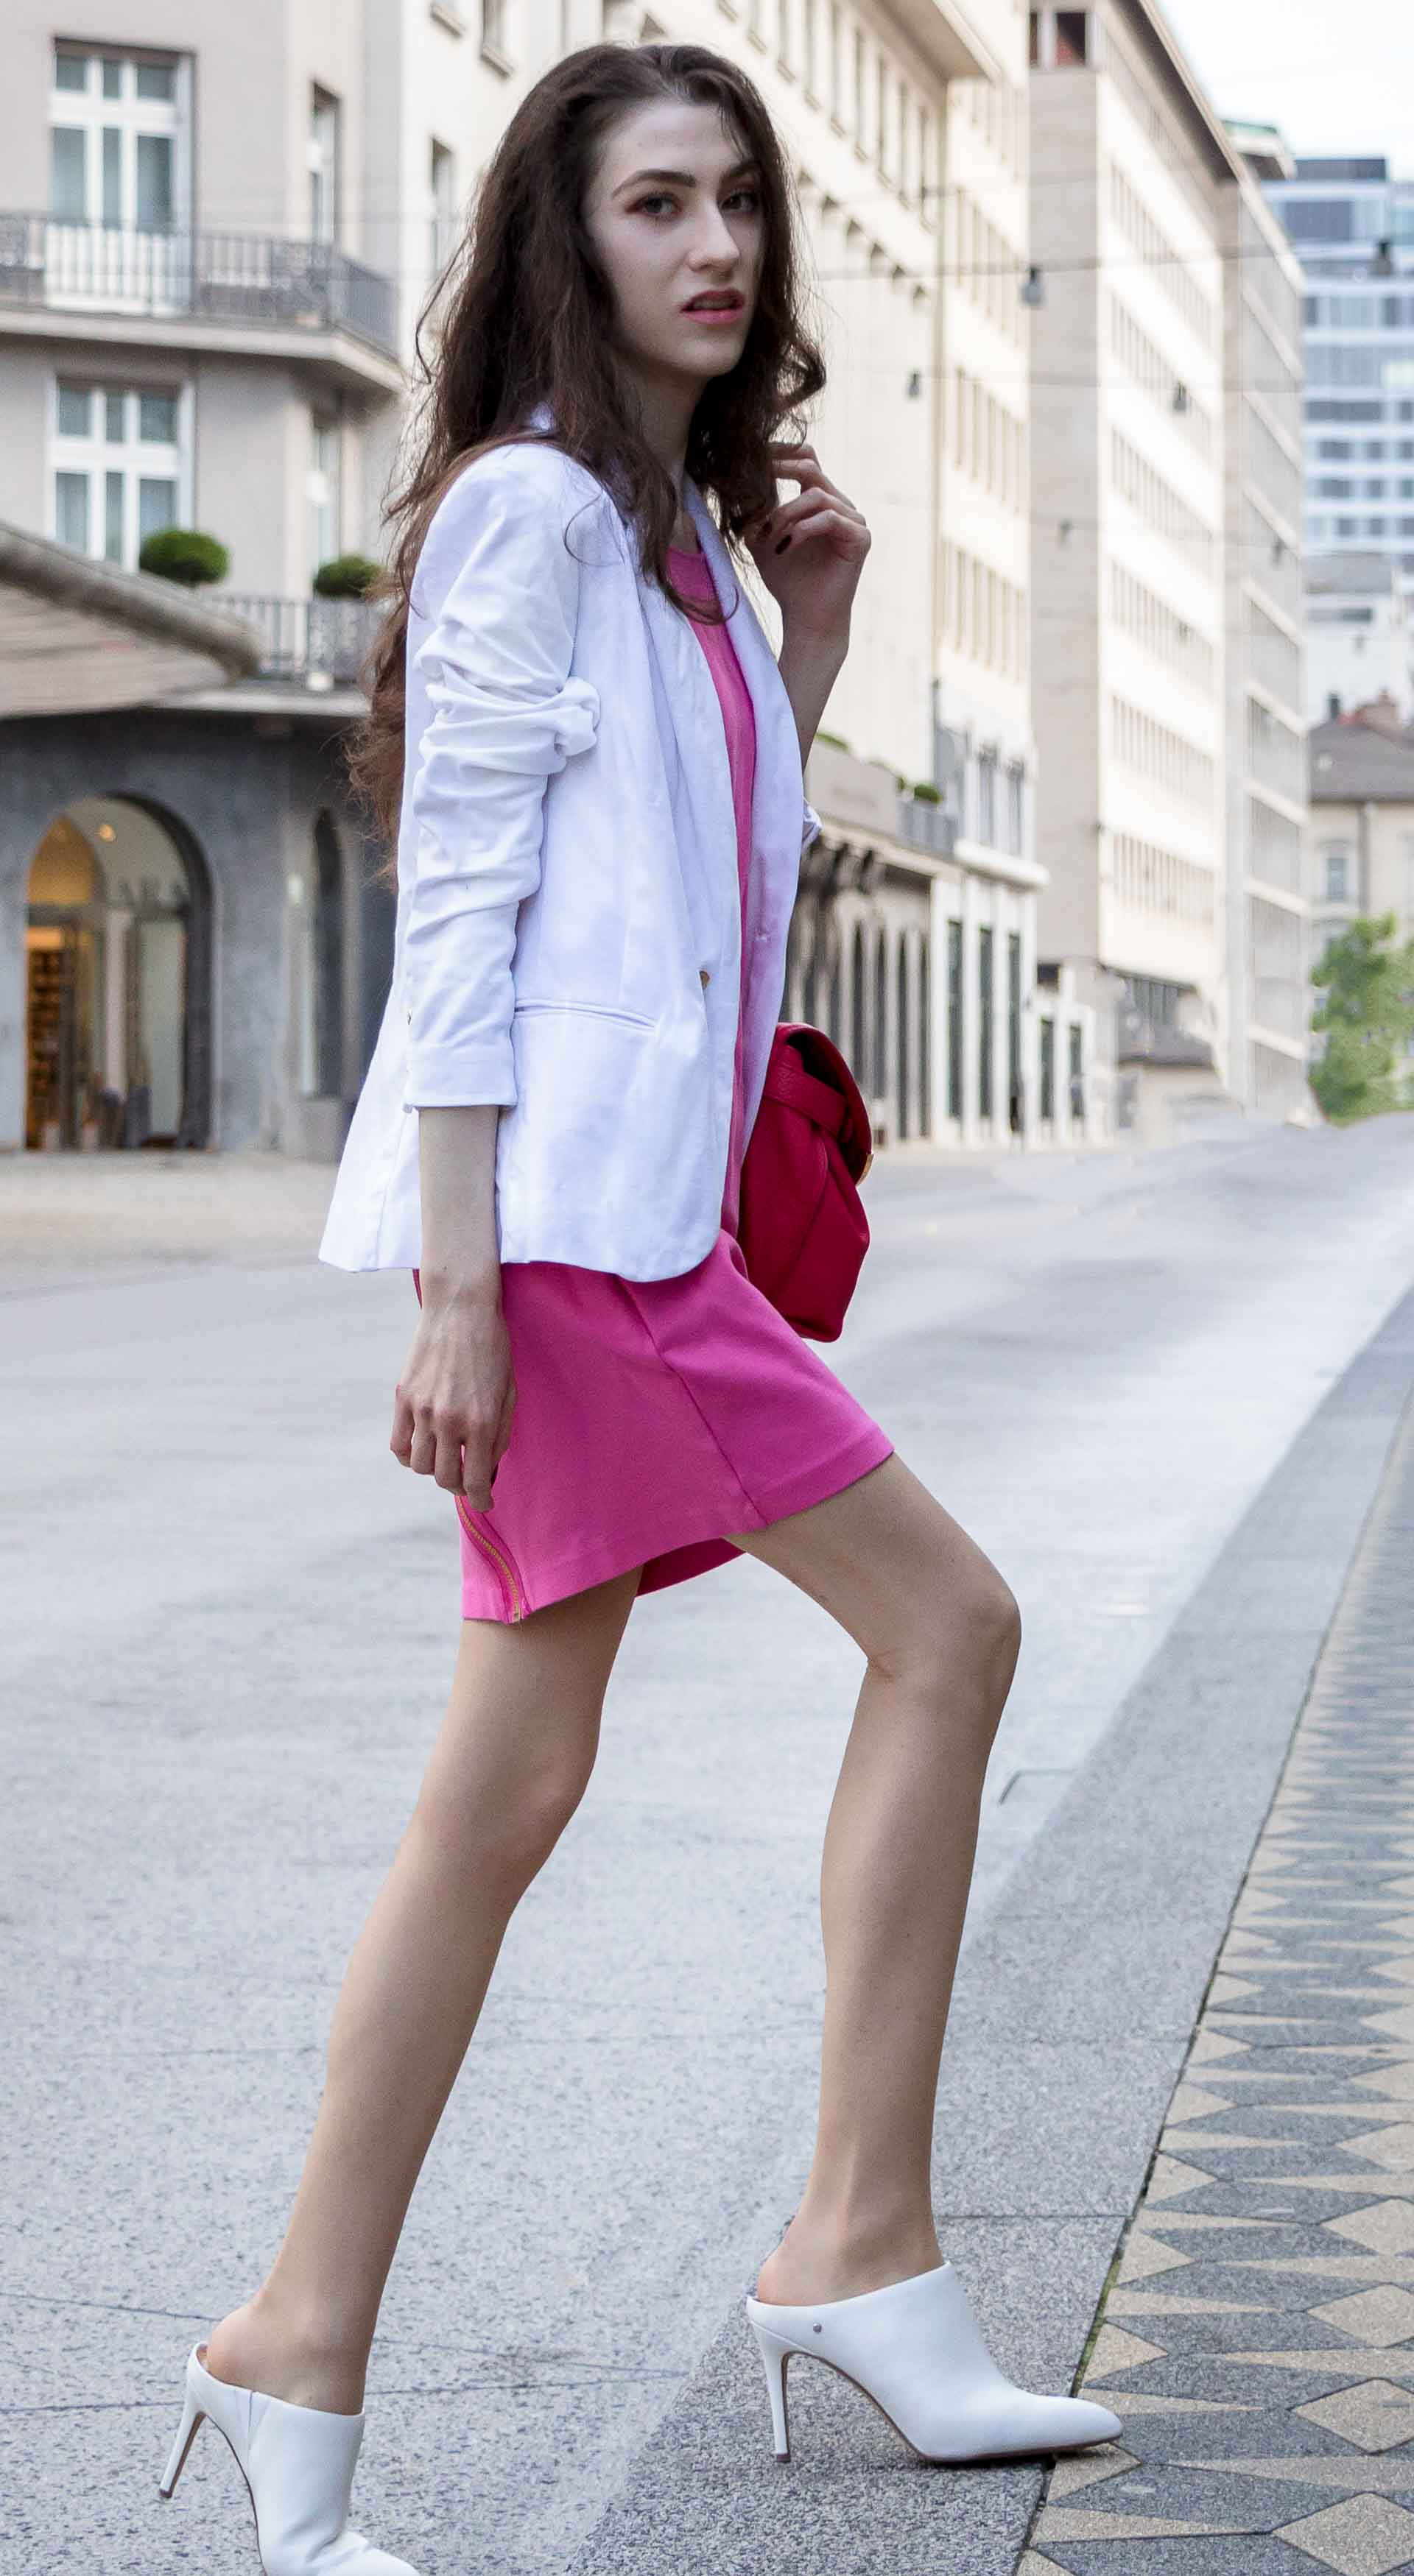 Fashion Blogger Veronika Lipar of Brunette from Wall Street wearing white high heel close toe mules, pink tailored short dress, white blazer, pink top handle bag for work in summer